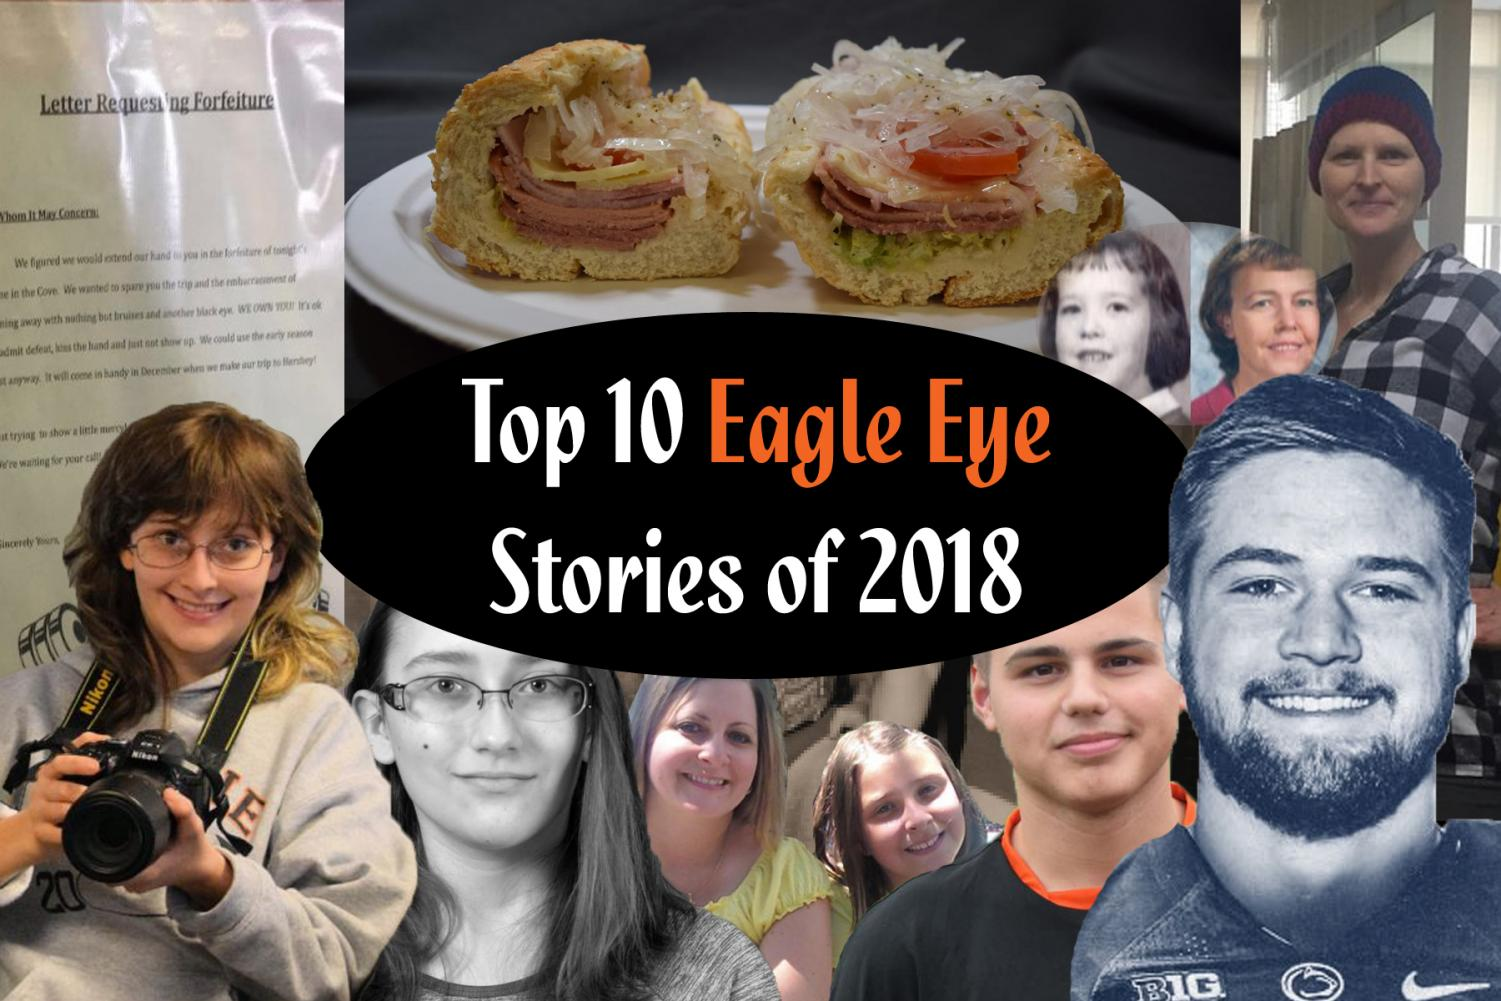 Just some of the images from the top Eagle Eye stories of 2018.